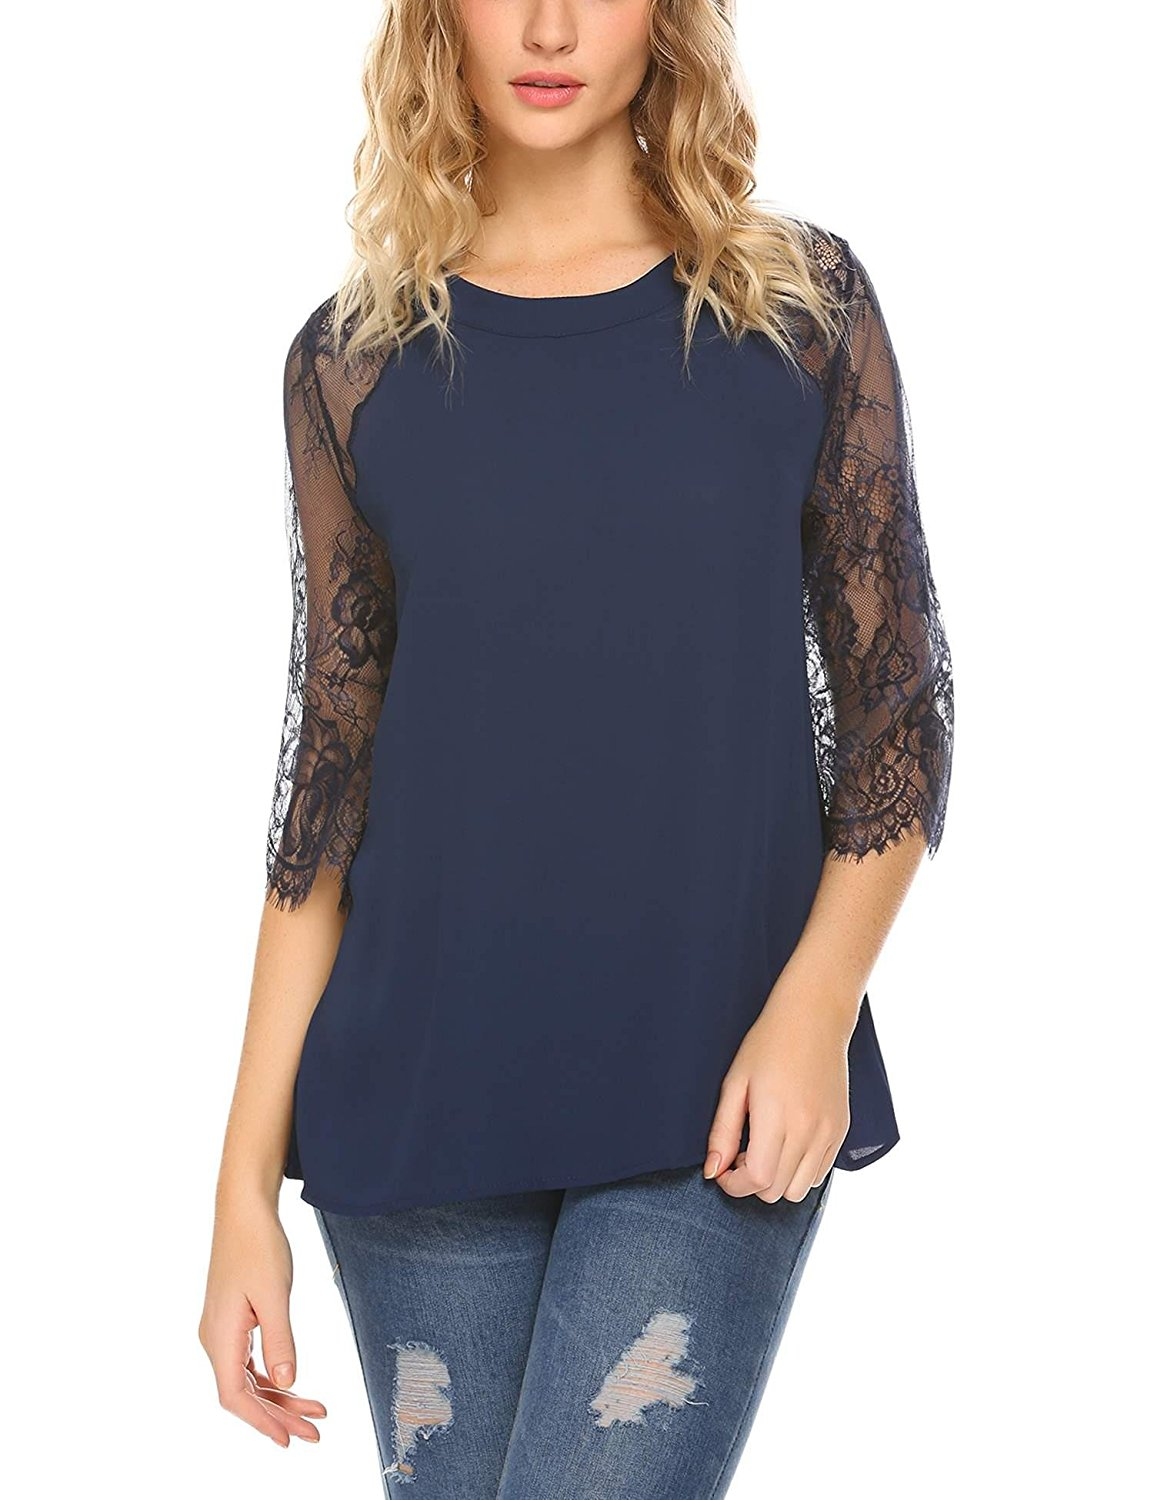 SoTeer Women 3/4 Lace Sleeve Blouse Sexy Keyhole Back Tunic Top Navy Blue XXL